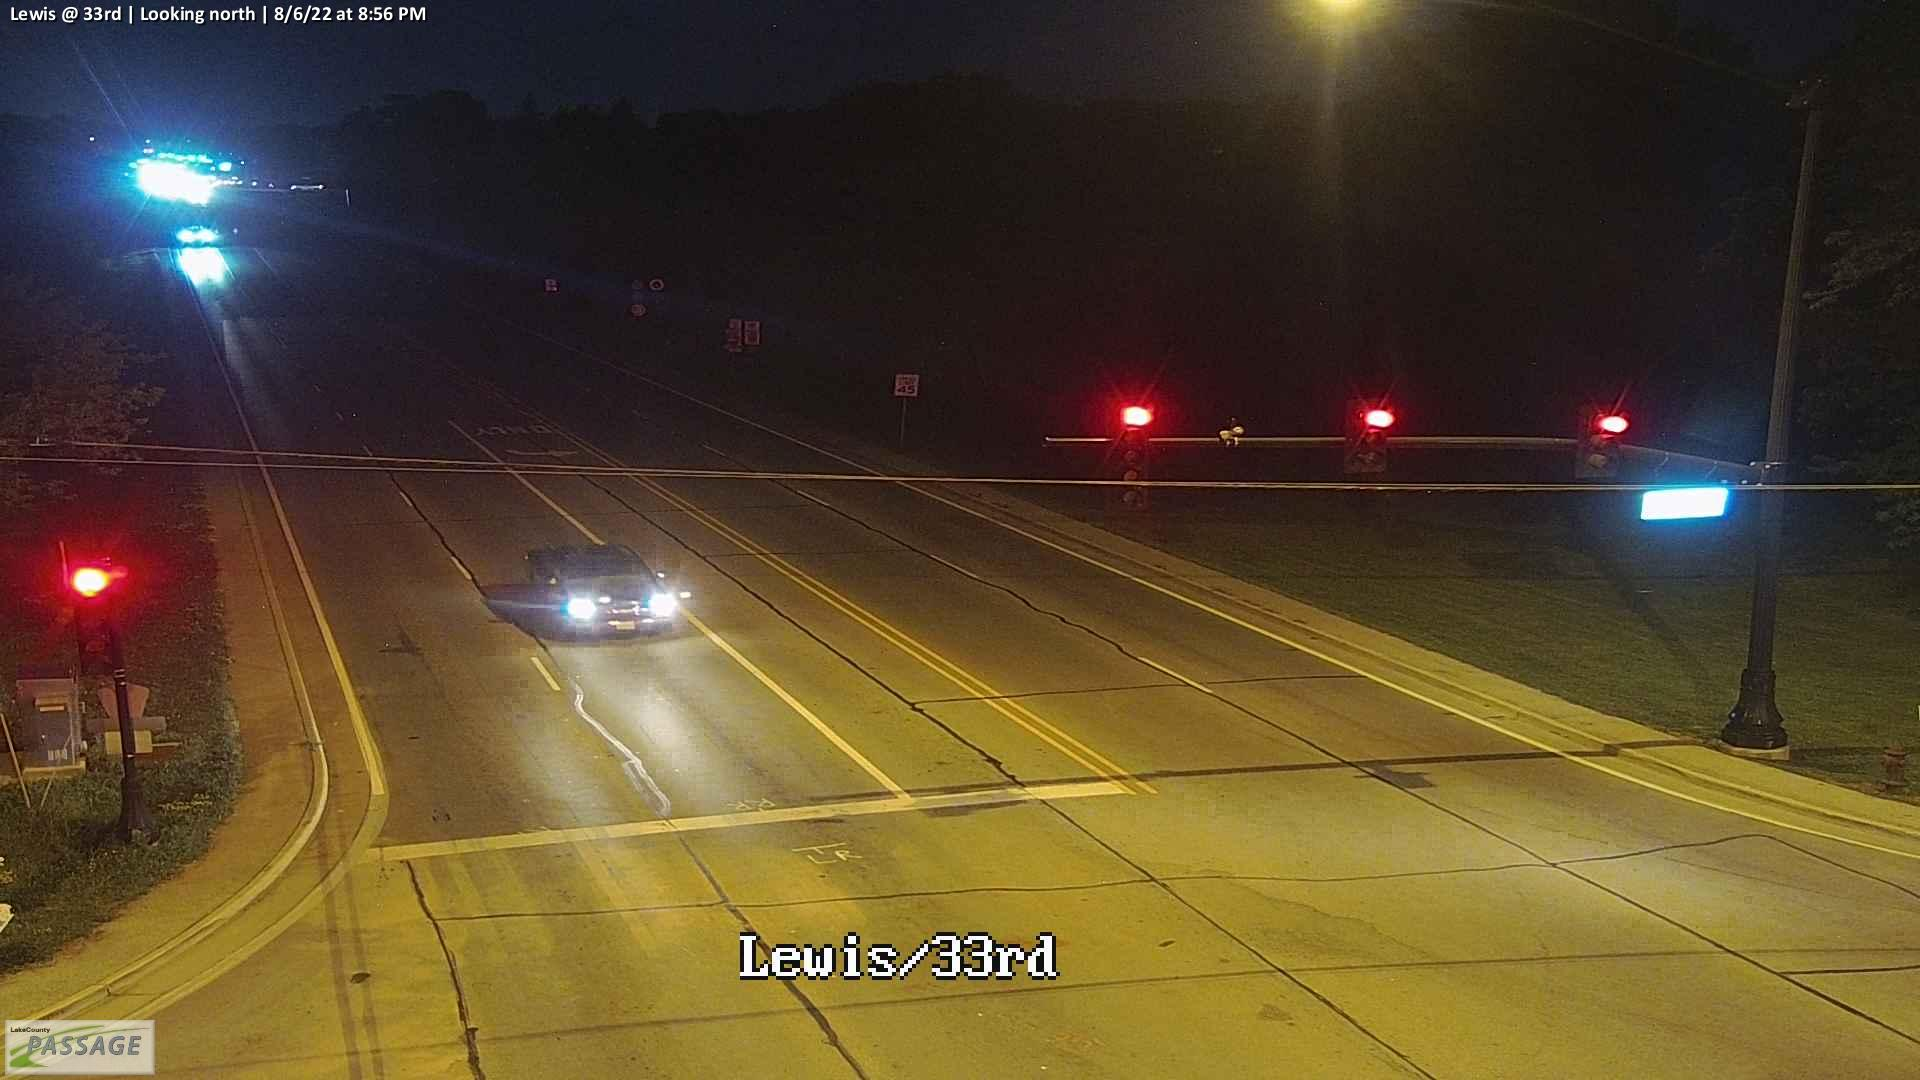 camera snapshot for Lewis at 33rd